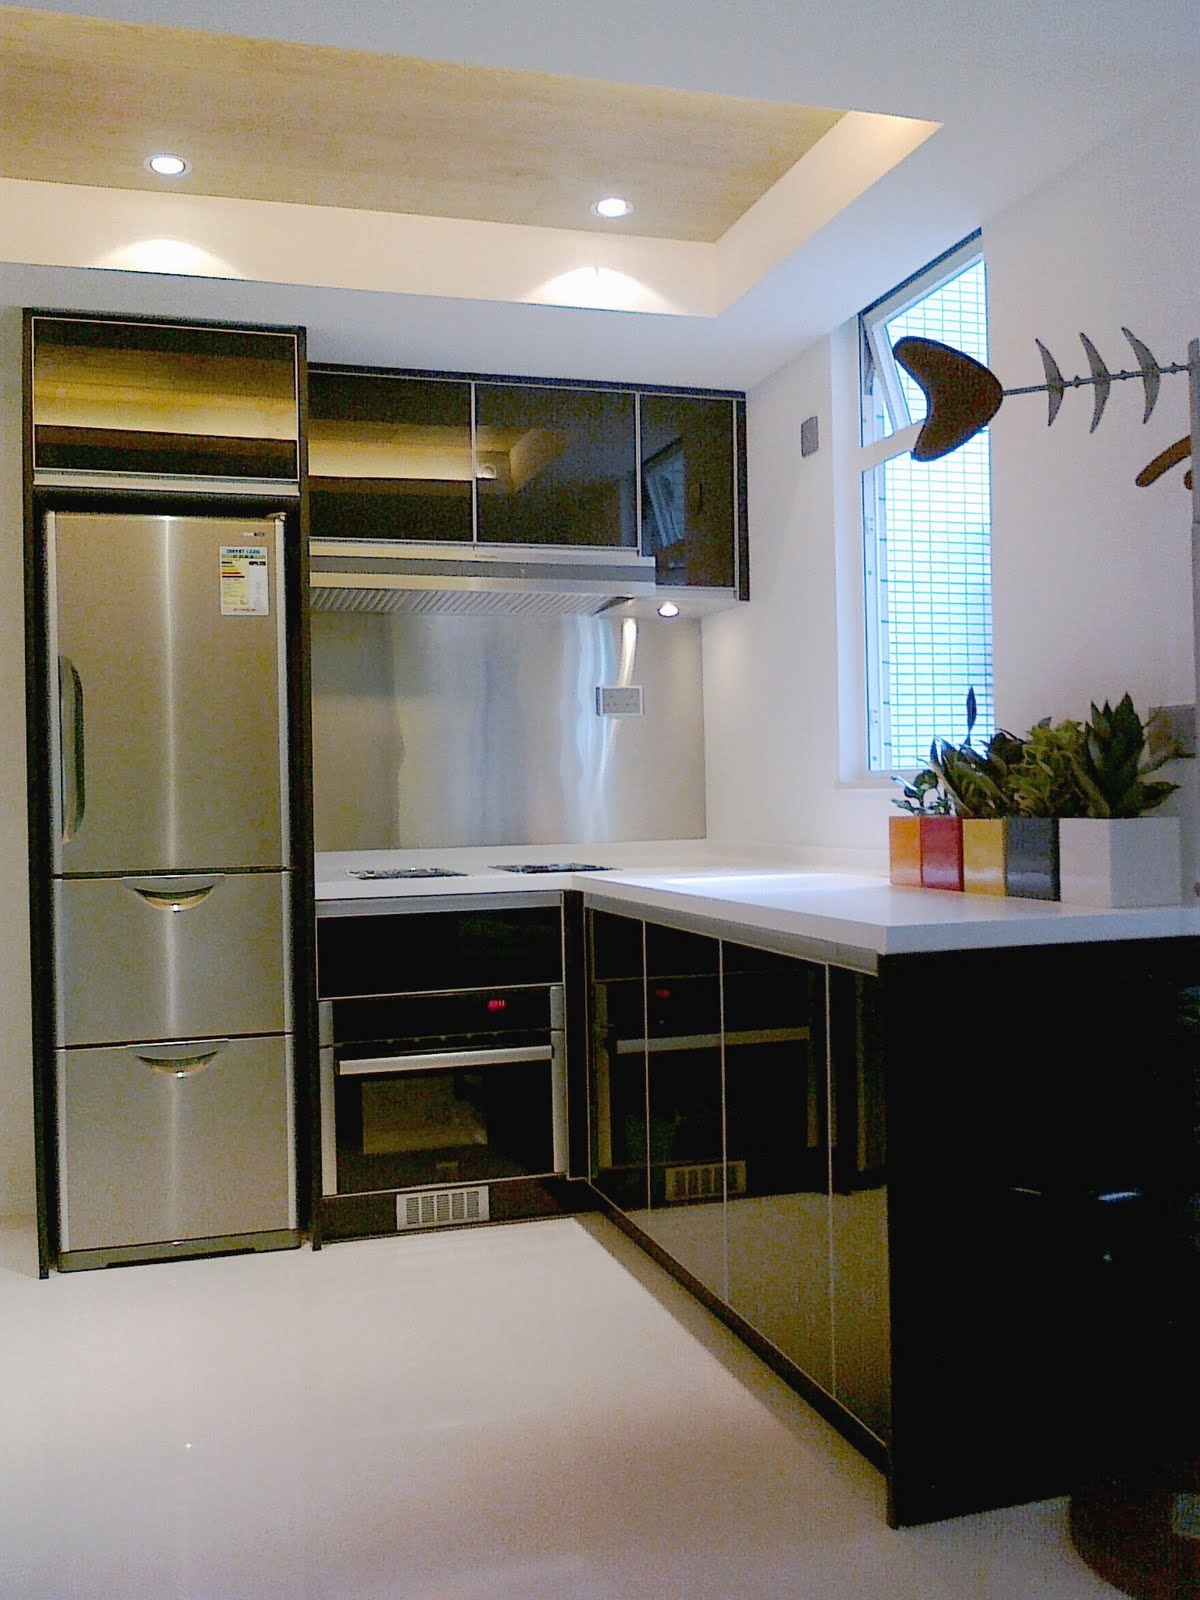 Average cost for kitchen cabinets for Average price of kitchen cabinets